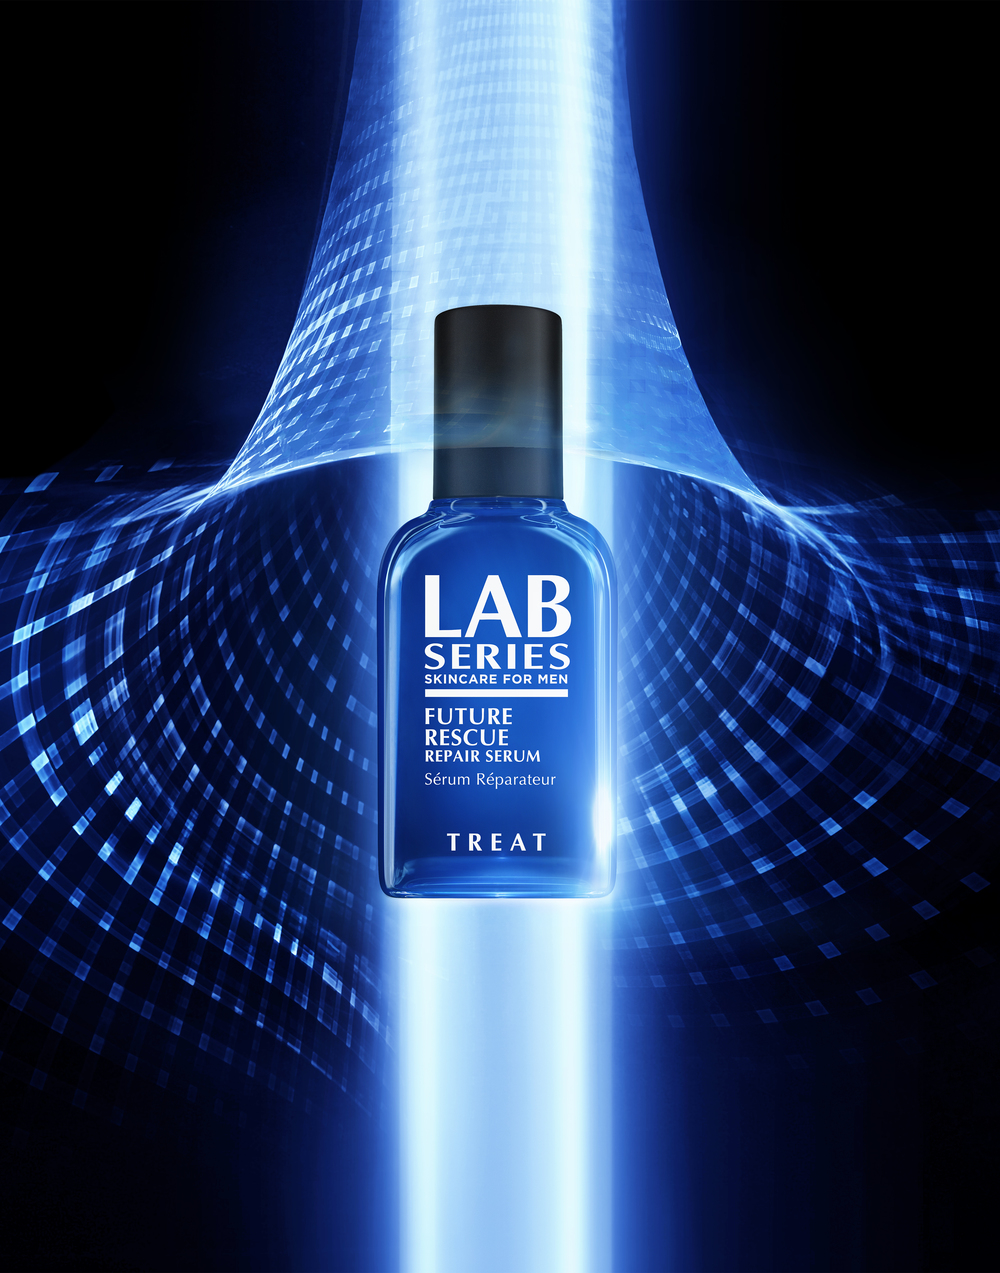 Over the past two years I worked closely with Lab Series, a division of Estee Lauder, on a number of different projects involving product visualizations, web animations, specially designed display units, and final images for print. The image above is the marketing still for the new Future Rescue Repair Serum that was based on the animation I developed below.